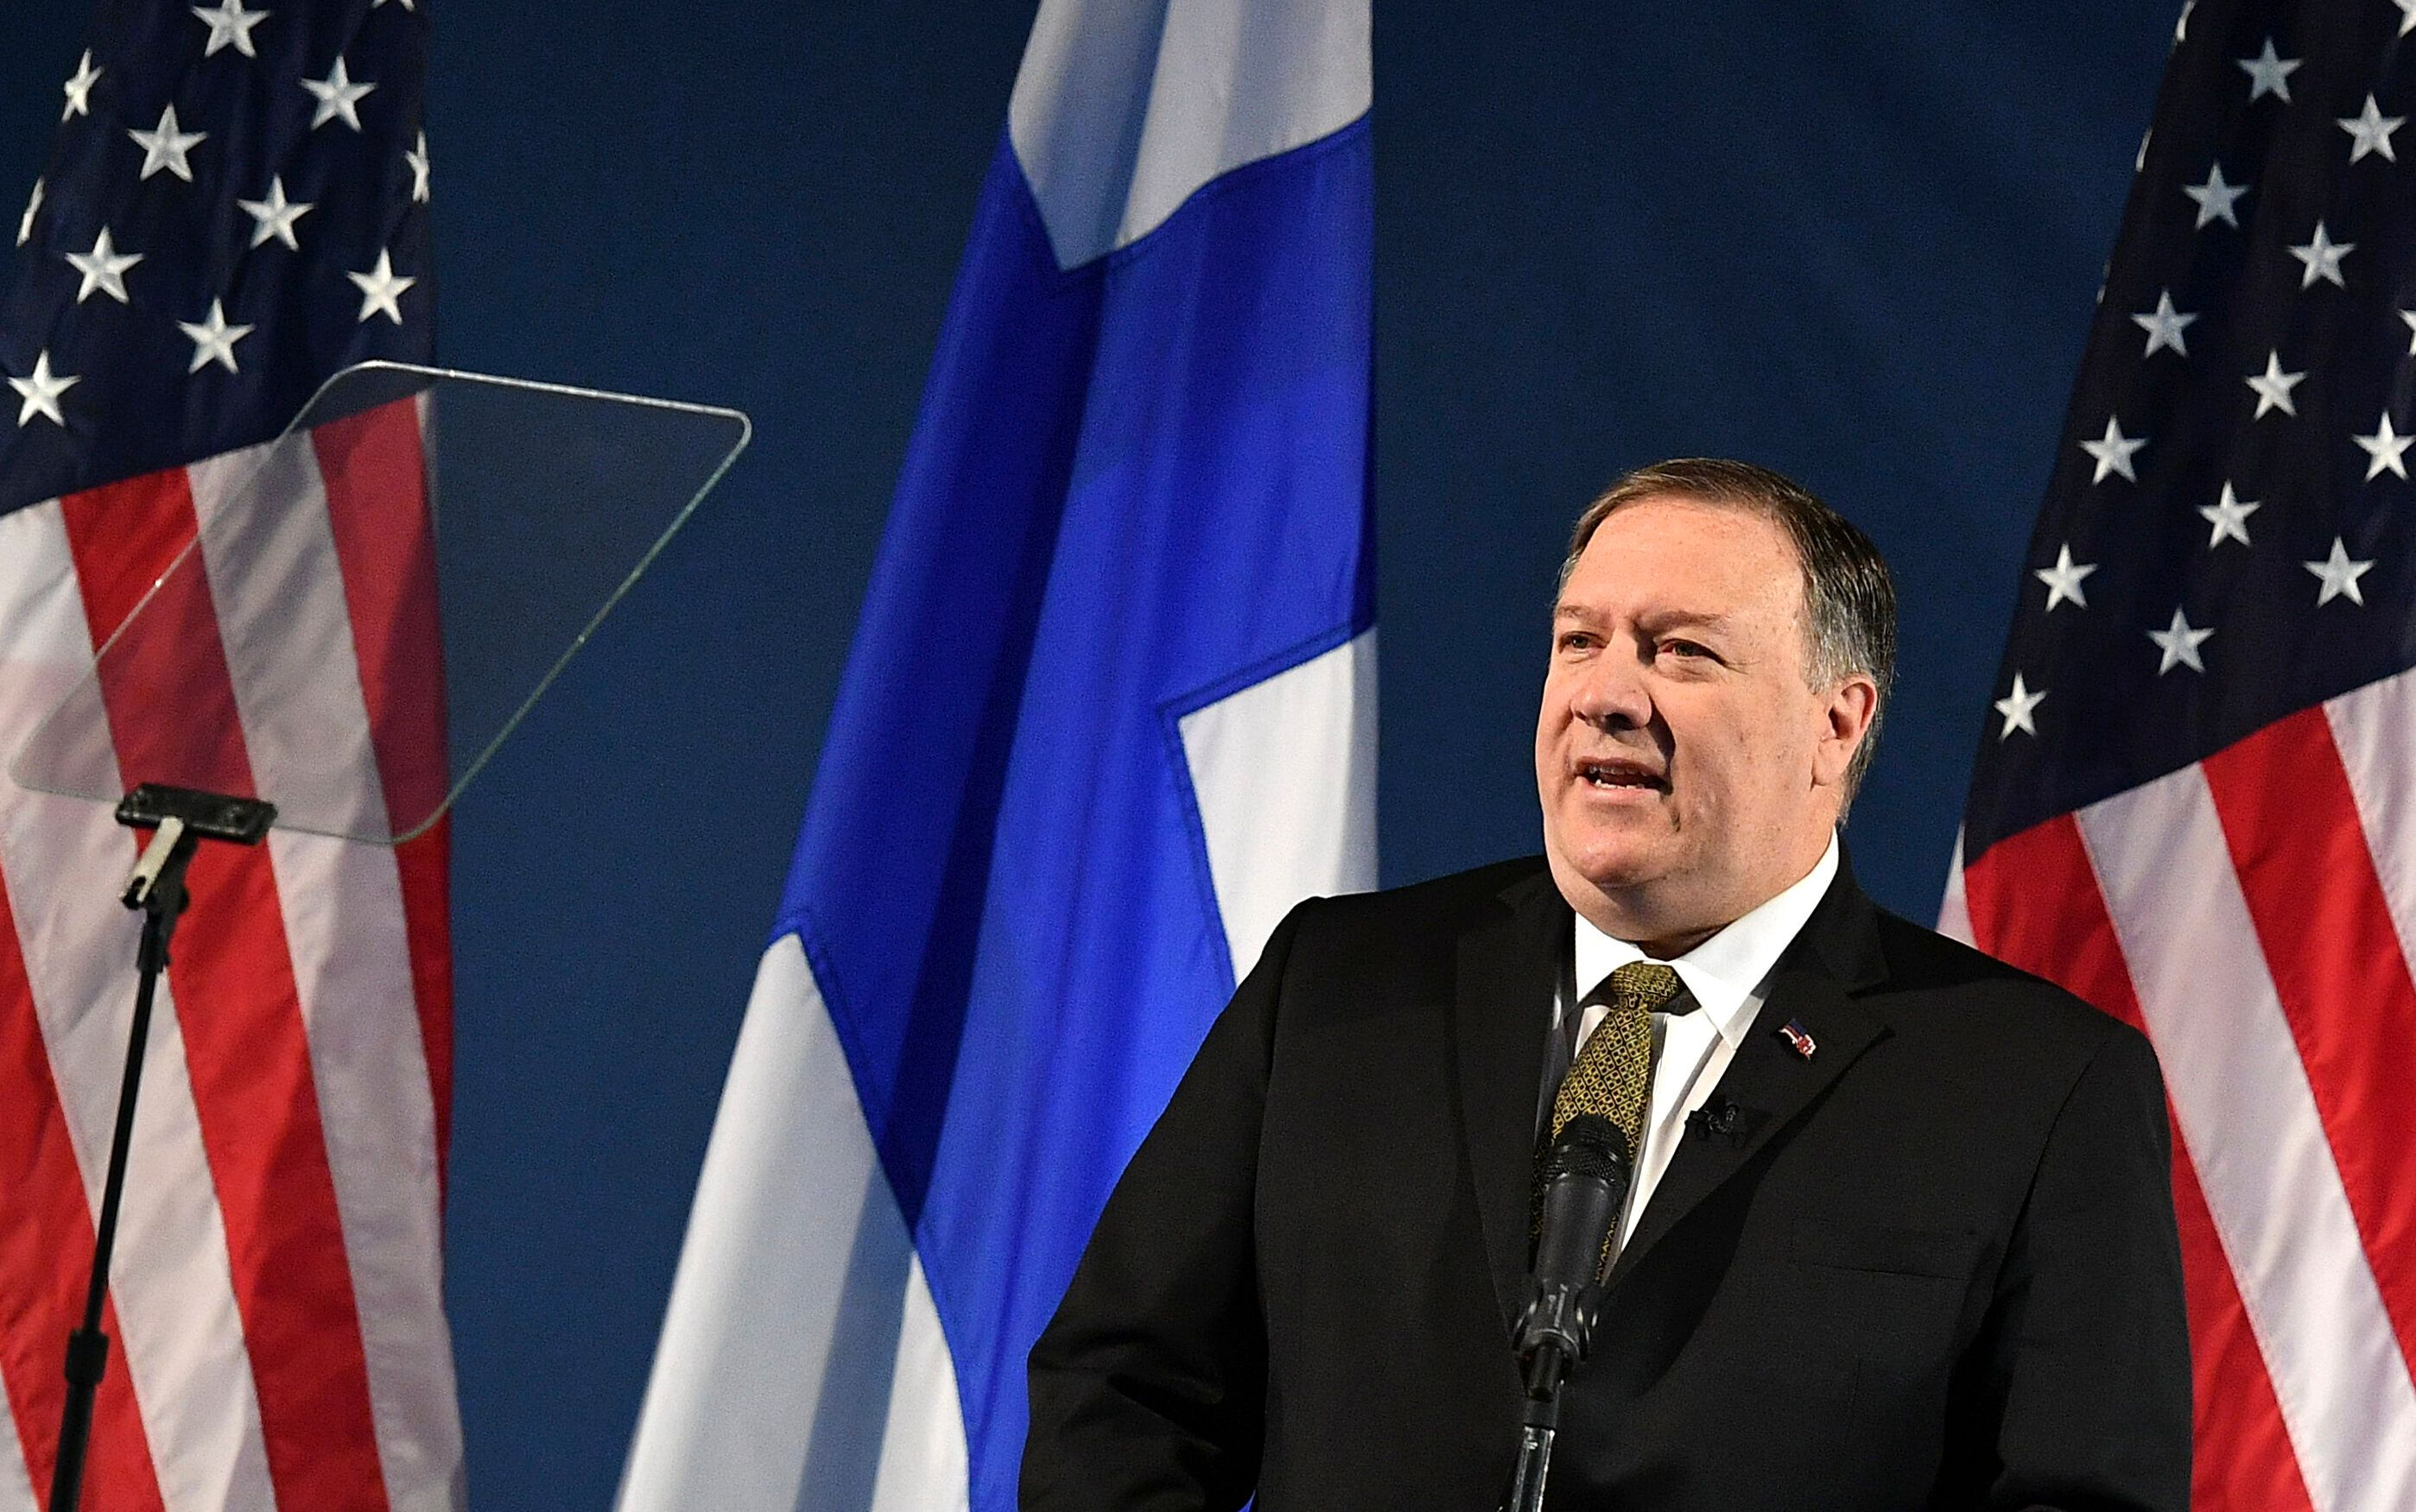 Secretary of State Mike Pompeo speaks on Arctic policy at the Lappi Areena in Rovaniemi, Finland, Monday, May 6, 2019. Pompeo is in Rovaniemi to attend the Arctic Council Ministerial Meeting.  (Mandel Ngan/Pool photo via AP)